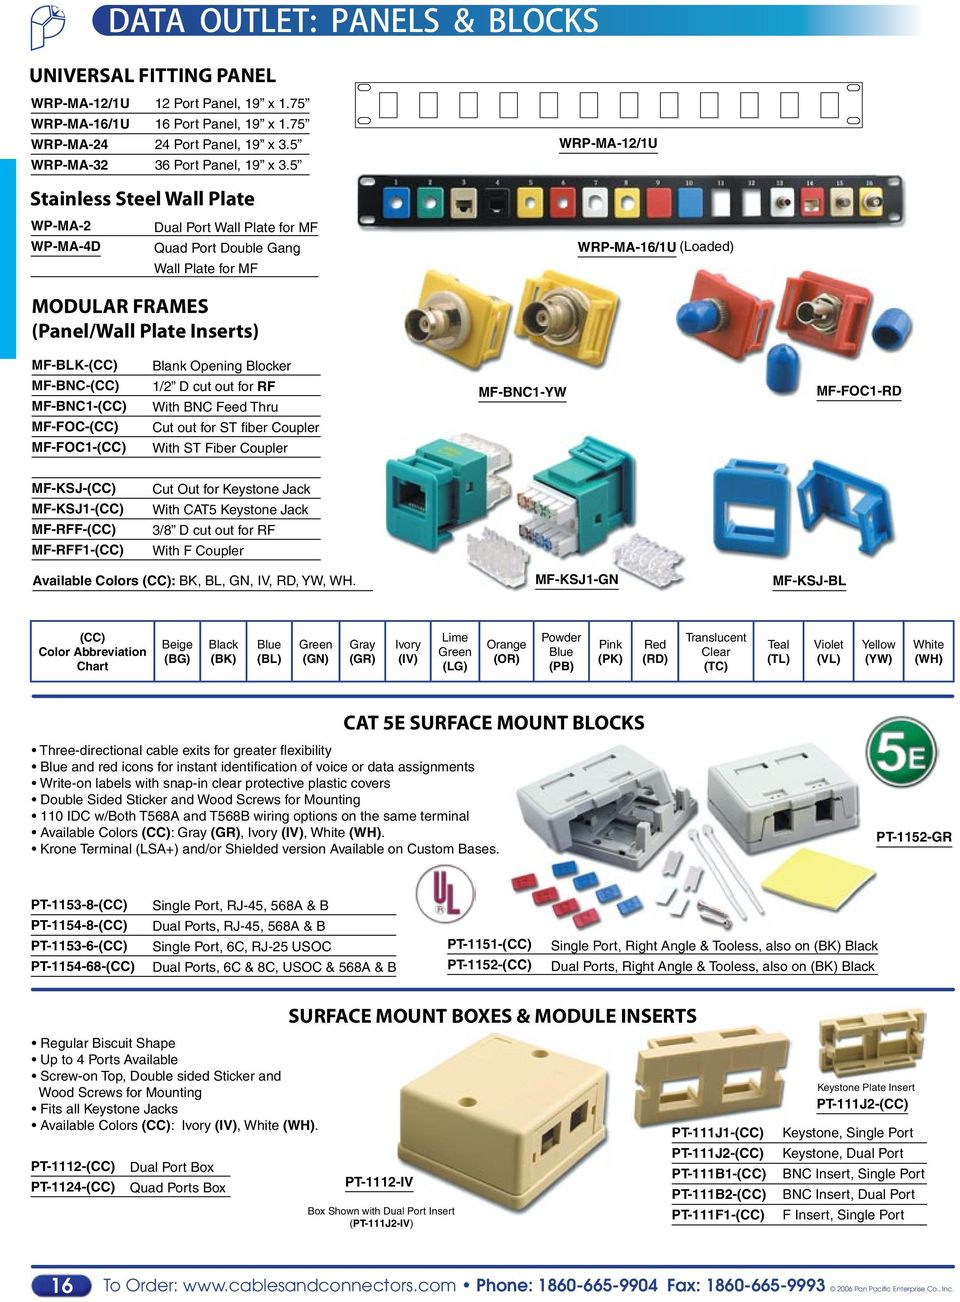 Voice Data Communication Components Accessories Pdf Bh Keystone Cat6 Jack Wiring Diagram Cat 6 Wall Plate For Mf Wrp Ma 12 1u 16